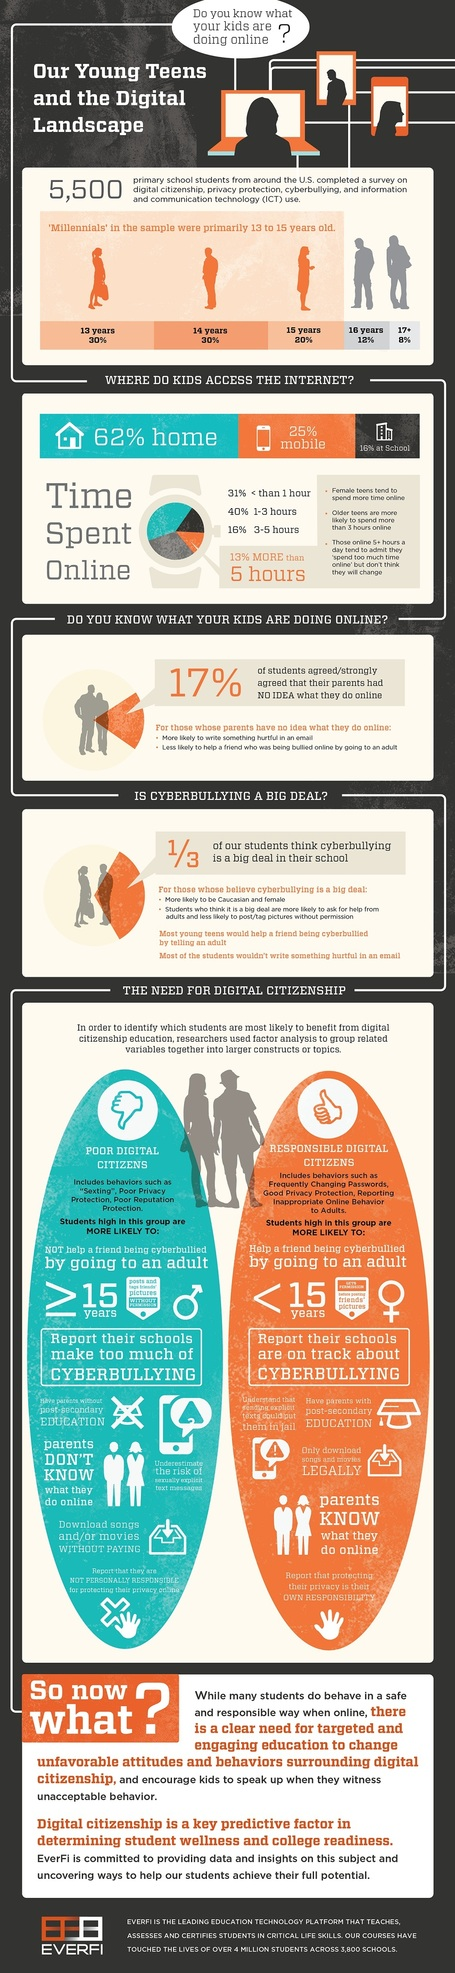 Why Kids Must Be Taught Digital Manners Infographic | eParenting and Parenting in the 21st Century | Scoop.it